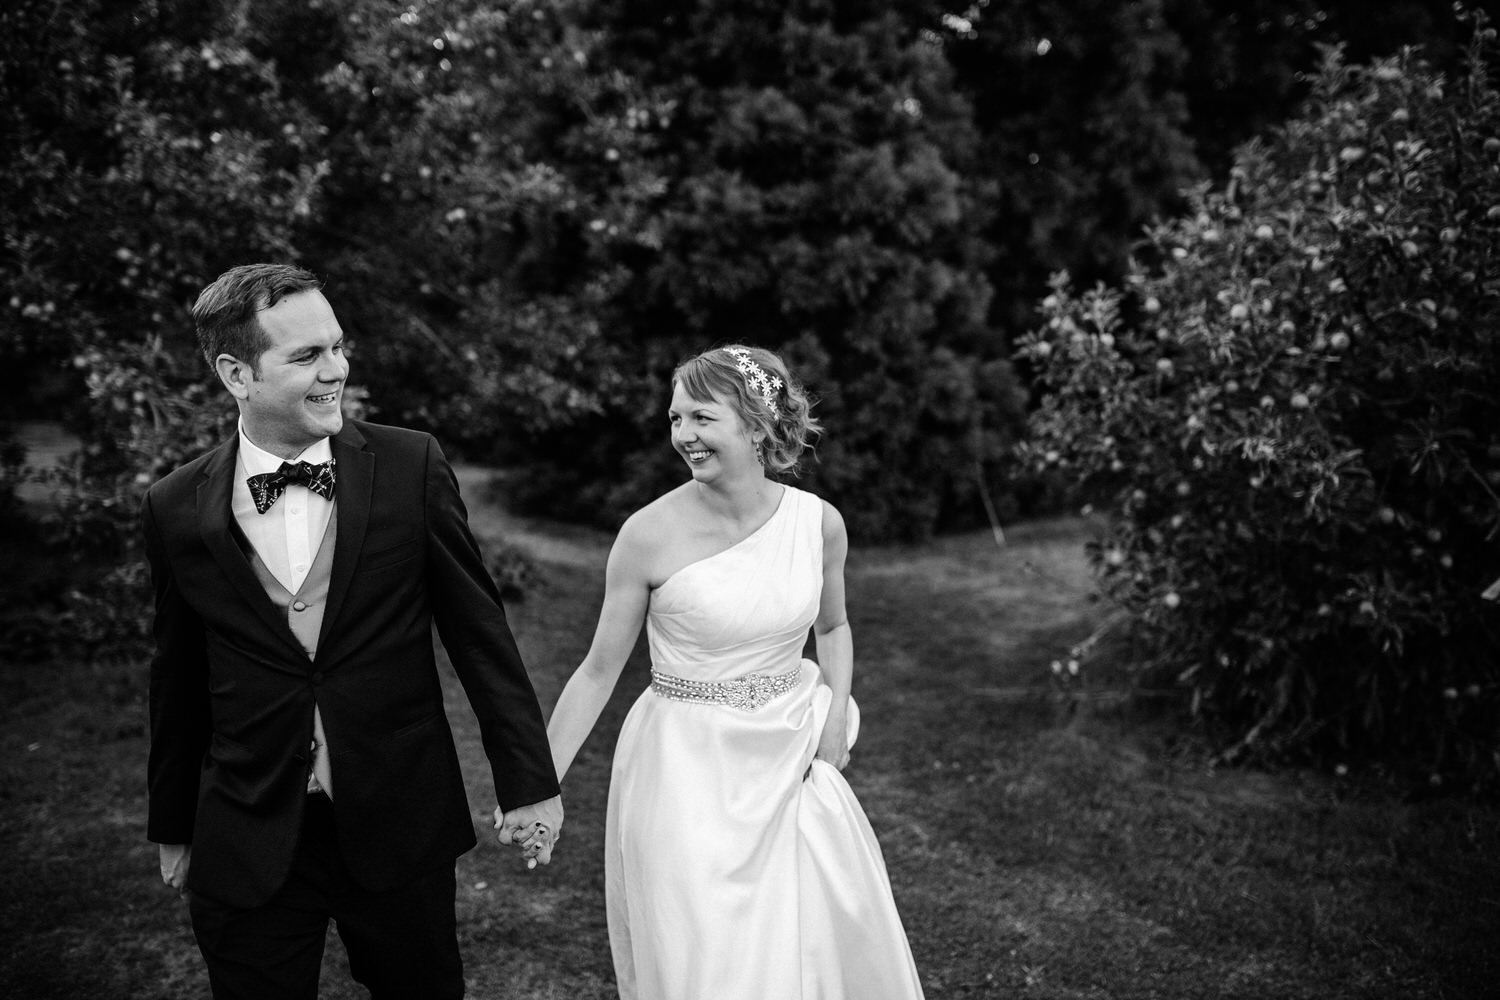 McMenamins Edgefield wedding photography 087.JPG